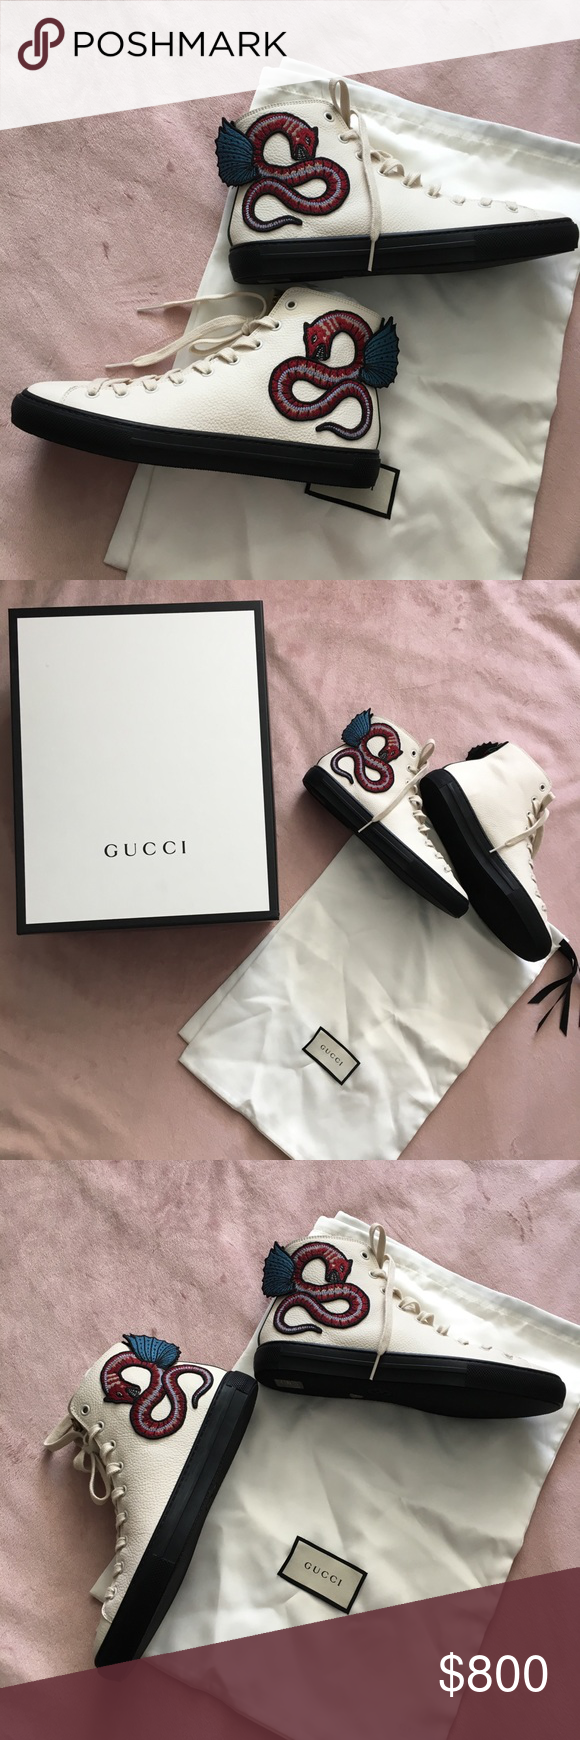 Gucci dragon hightop sneakers NEW fits